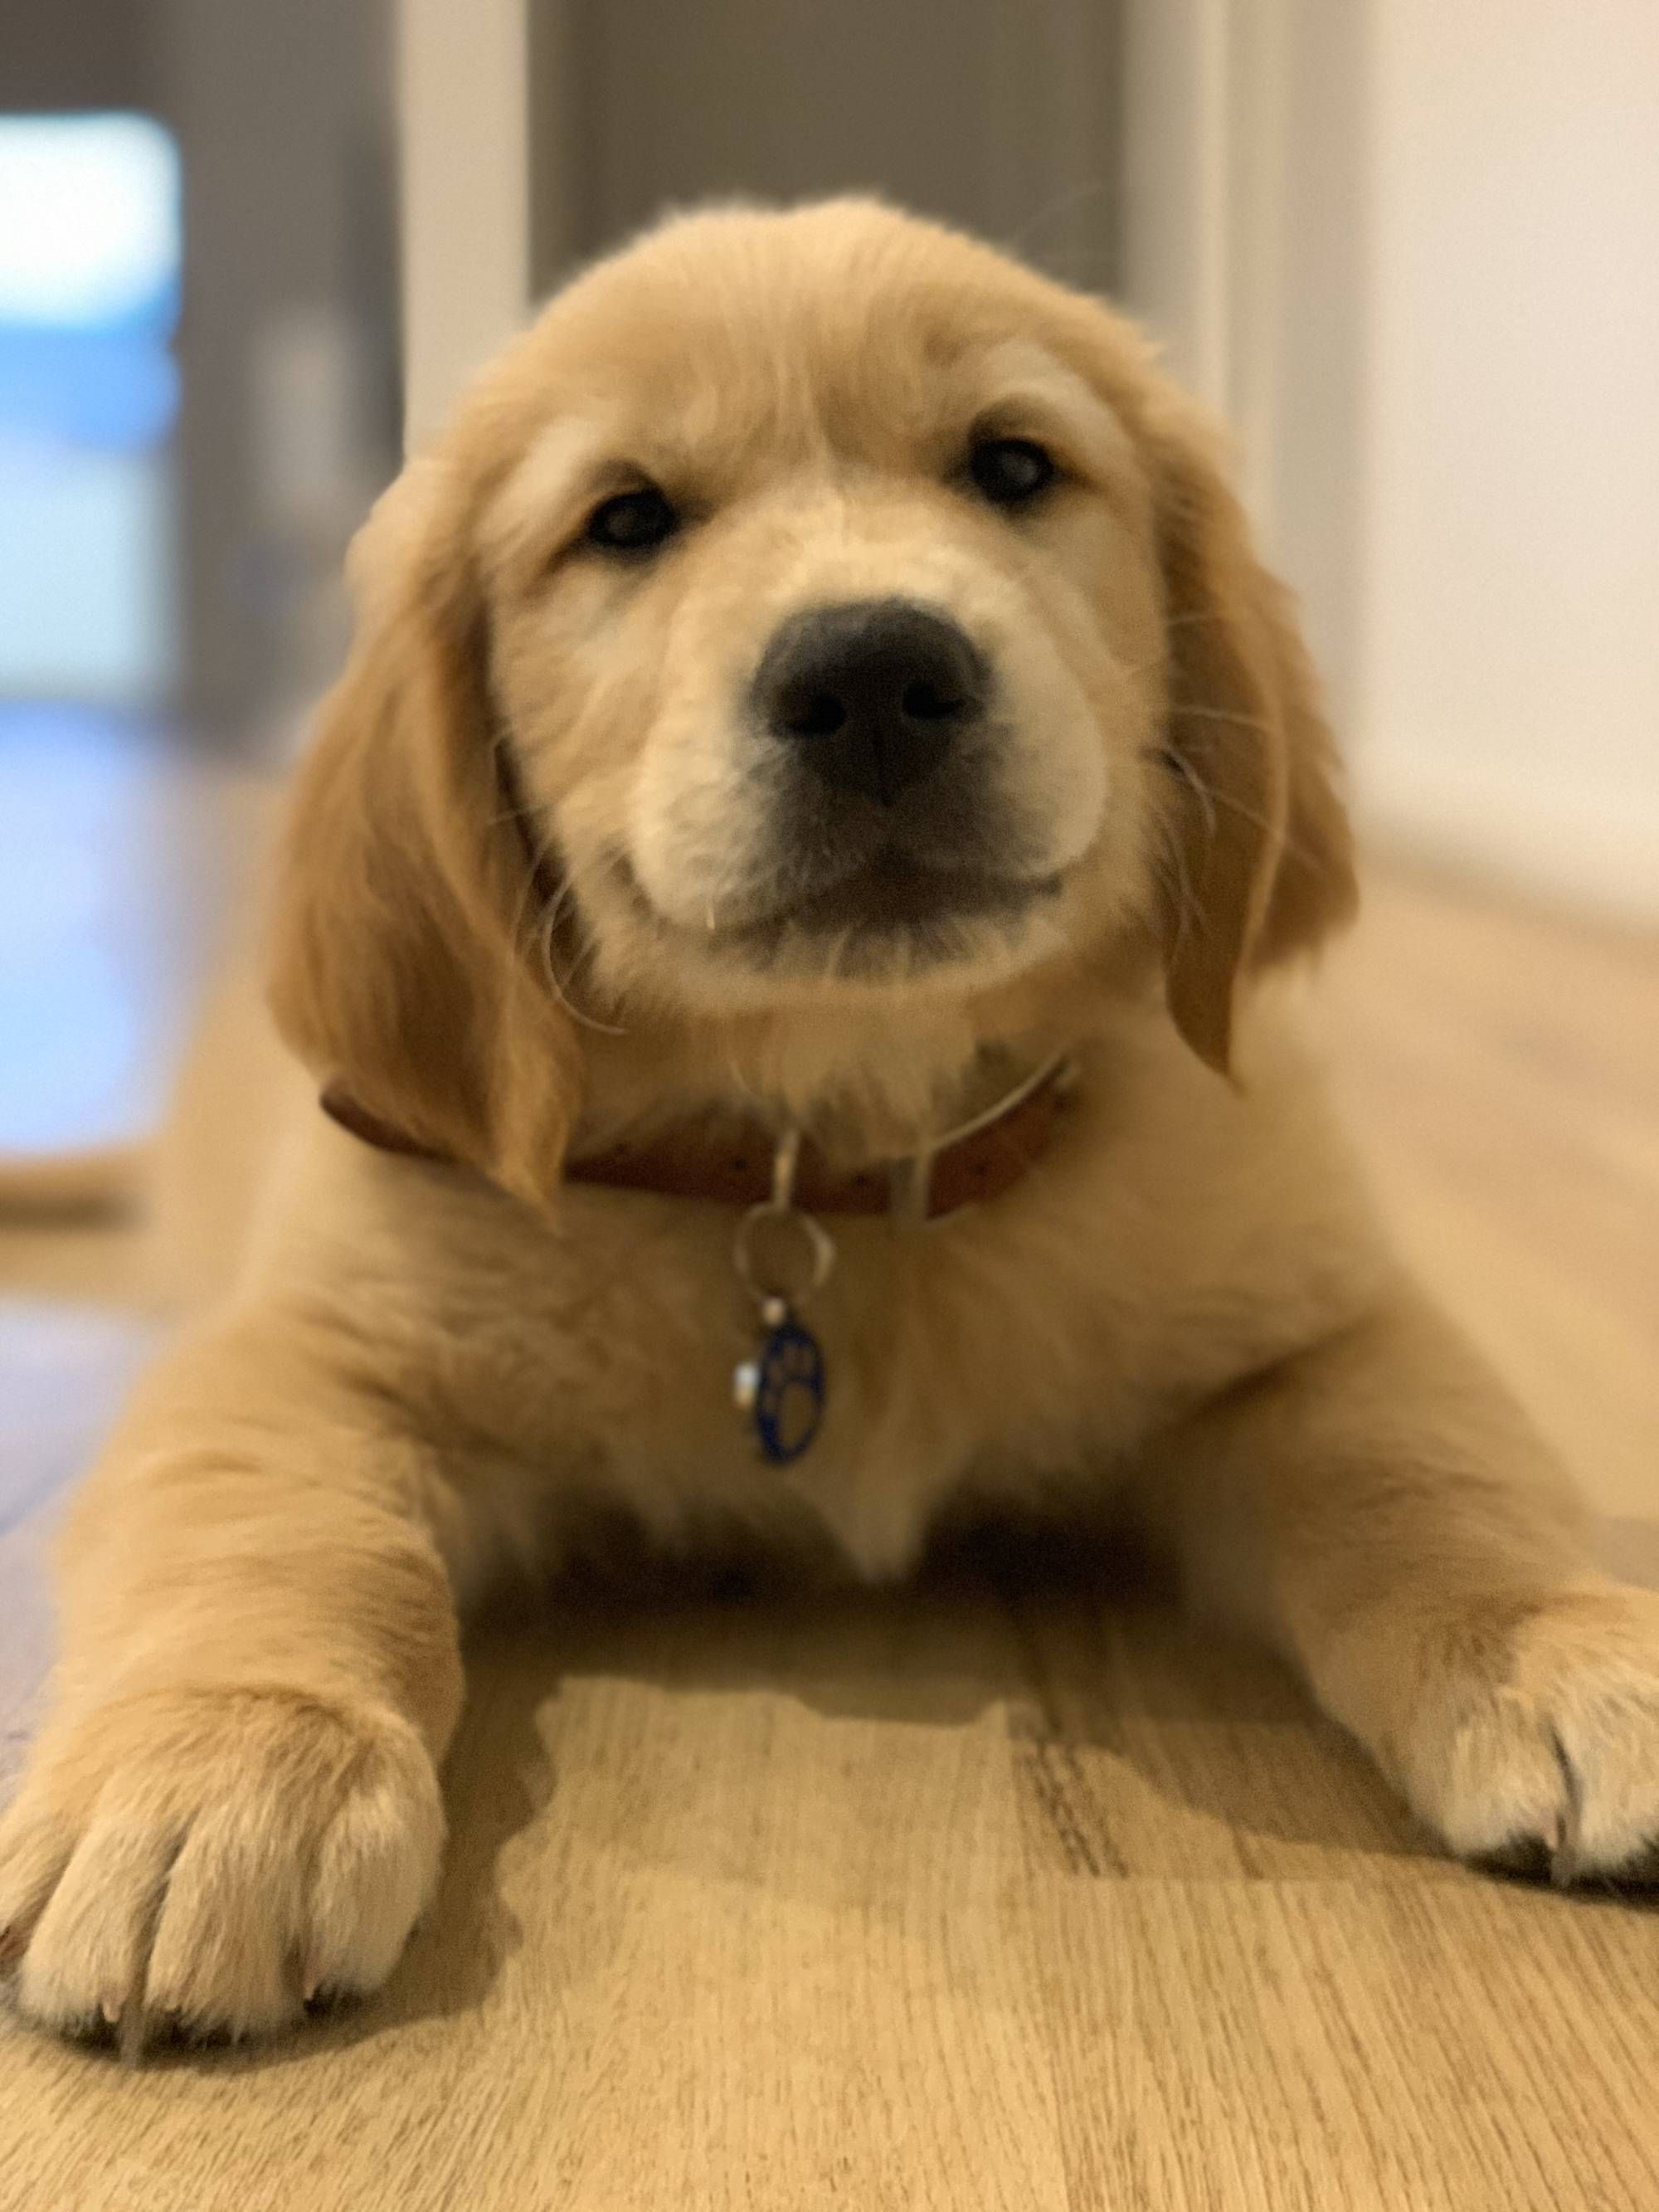 The Newest Addition To Our Family Meet Finn In 2020 Cute Dogs And Puppies Dogs Golden Retriever Cute Dogs